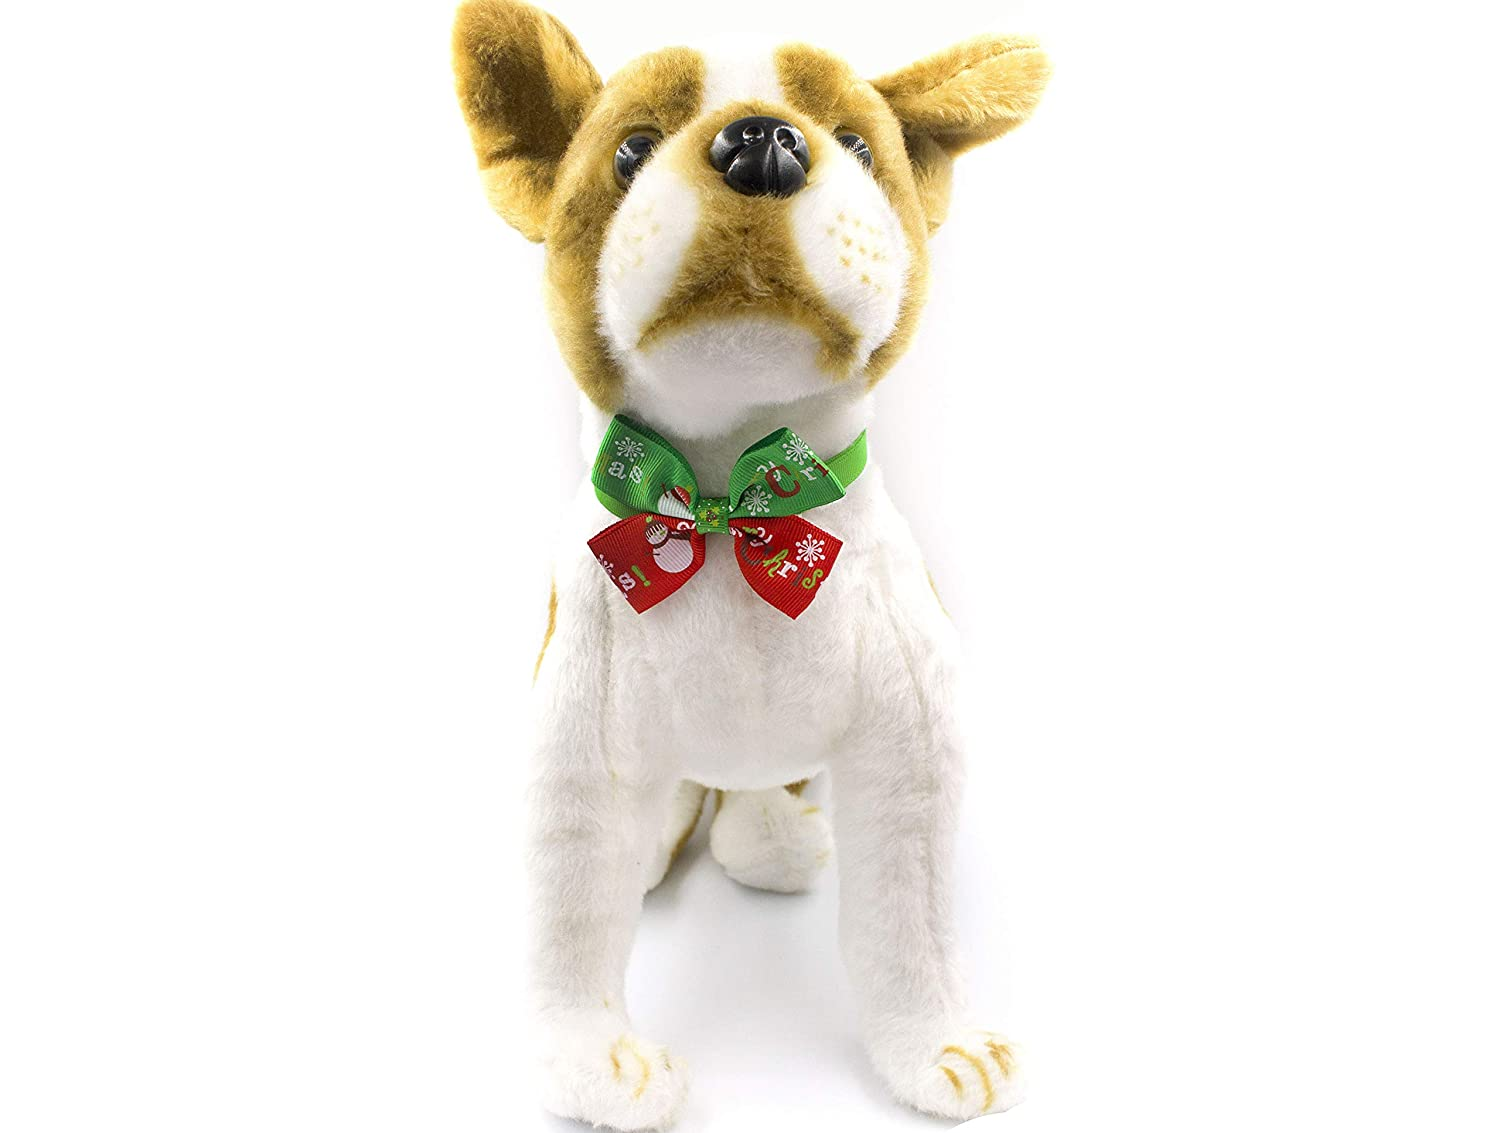 AXEL PETS Dog and Cat Bow Tie Holiday Christmas Adjustable Collar with Snowflakes & Snowman Theme